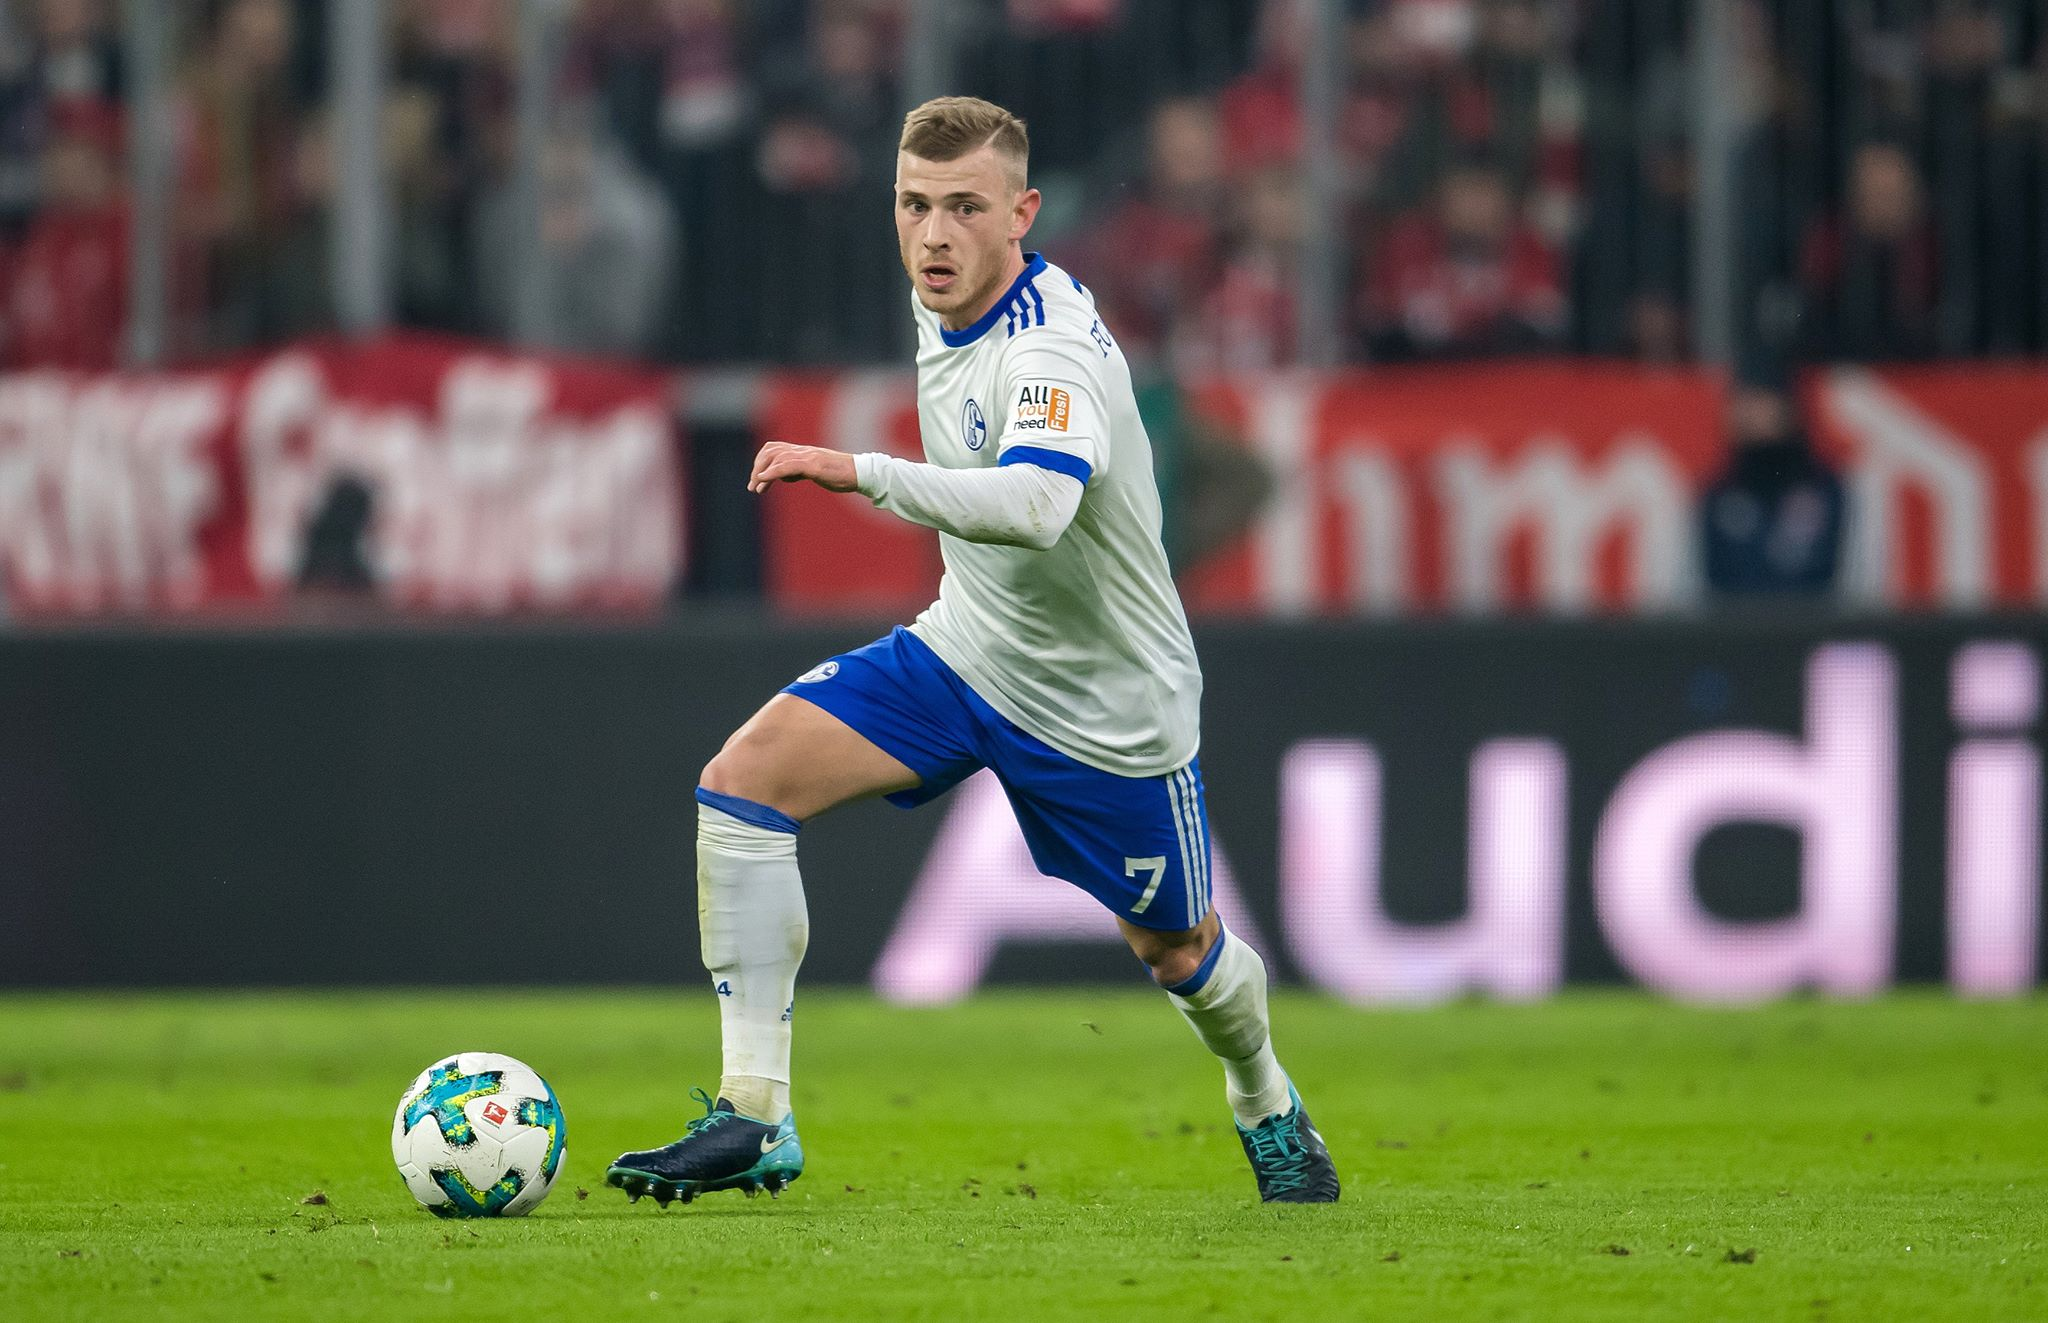 PSG tracking Gunners target Max Meyer, according to reports